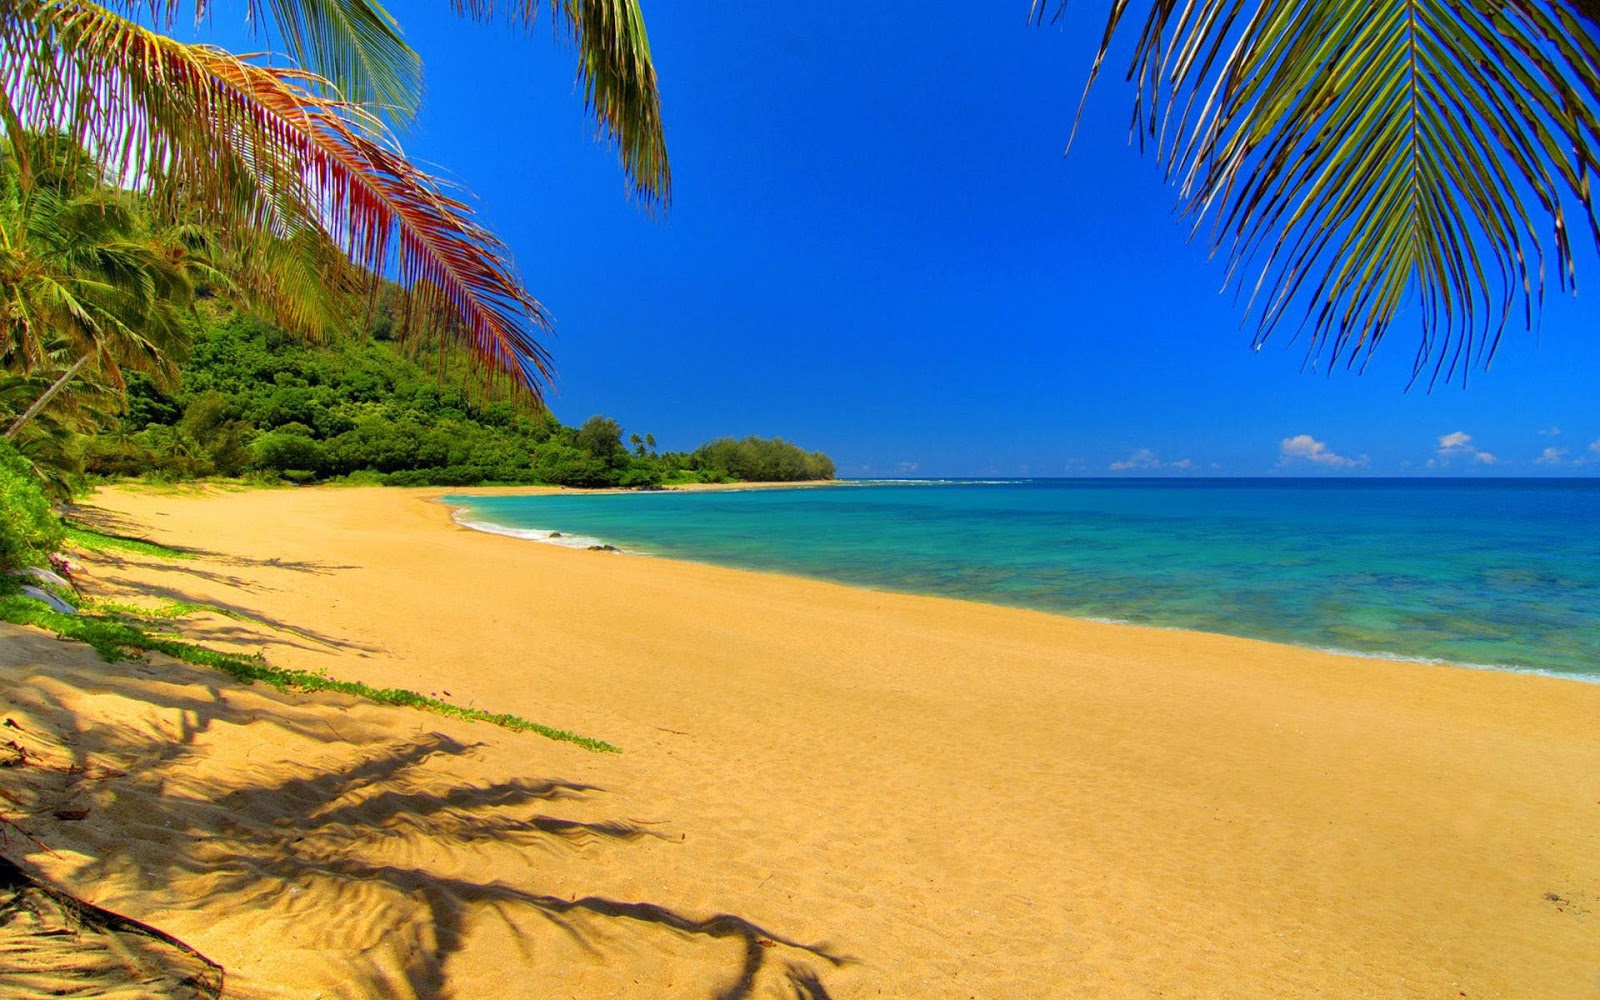 Kauai Hawaii United States  city photo : tunnels beach kauai hawaii united states